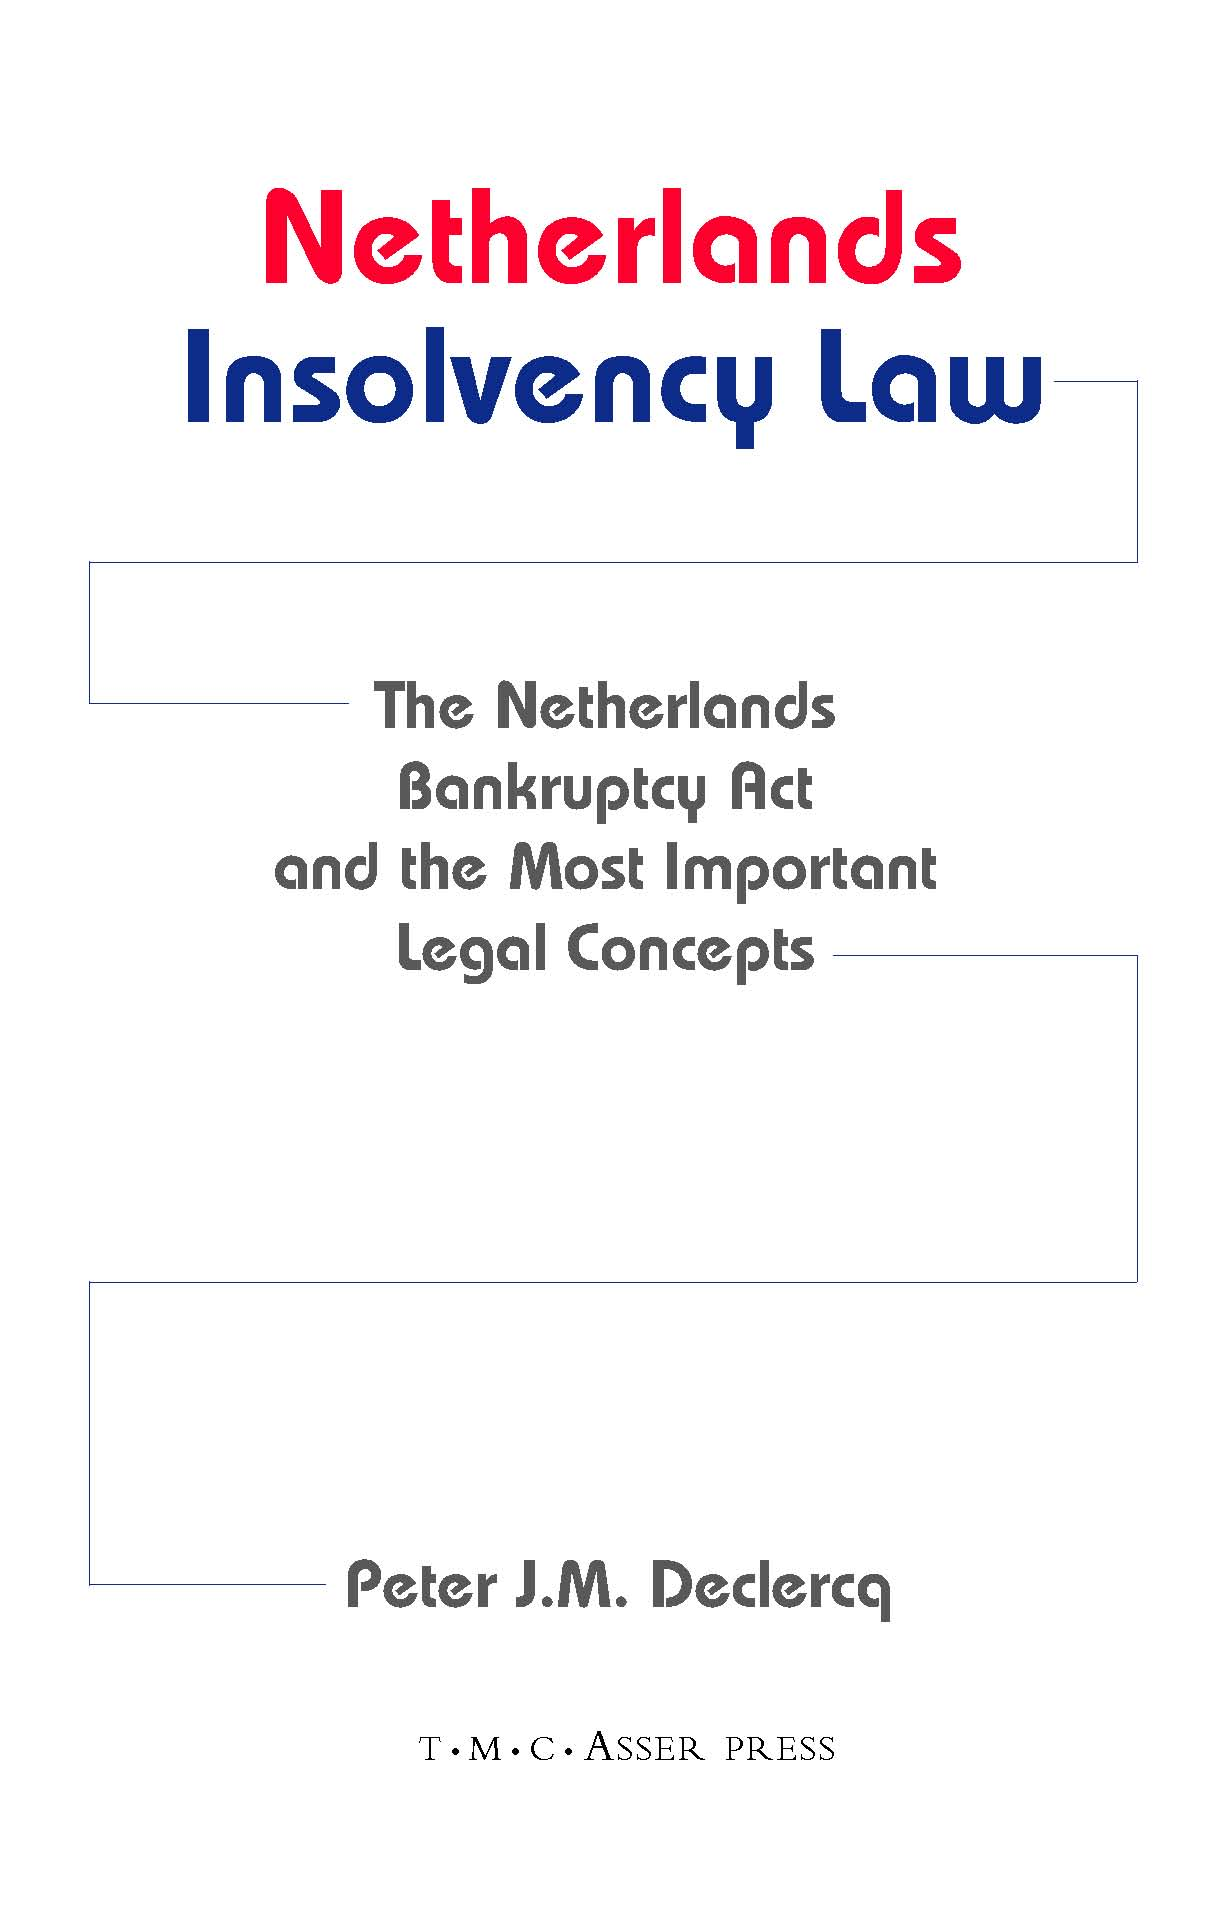 Netherlands Insolvency Law - The Netherlands Bankruptcy Act and the Most Important Legal Concepts